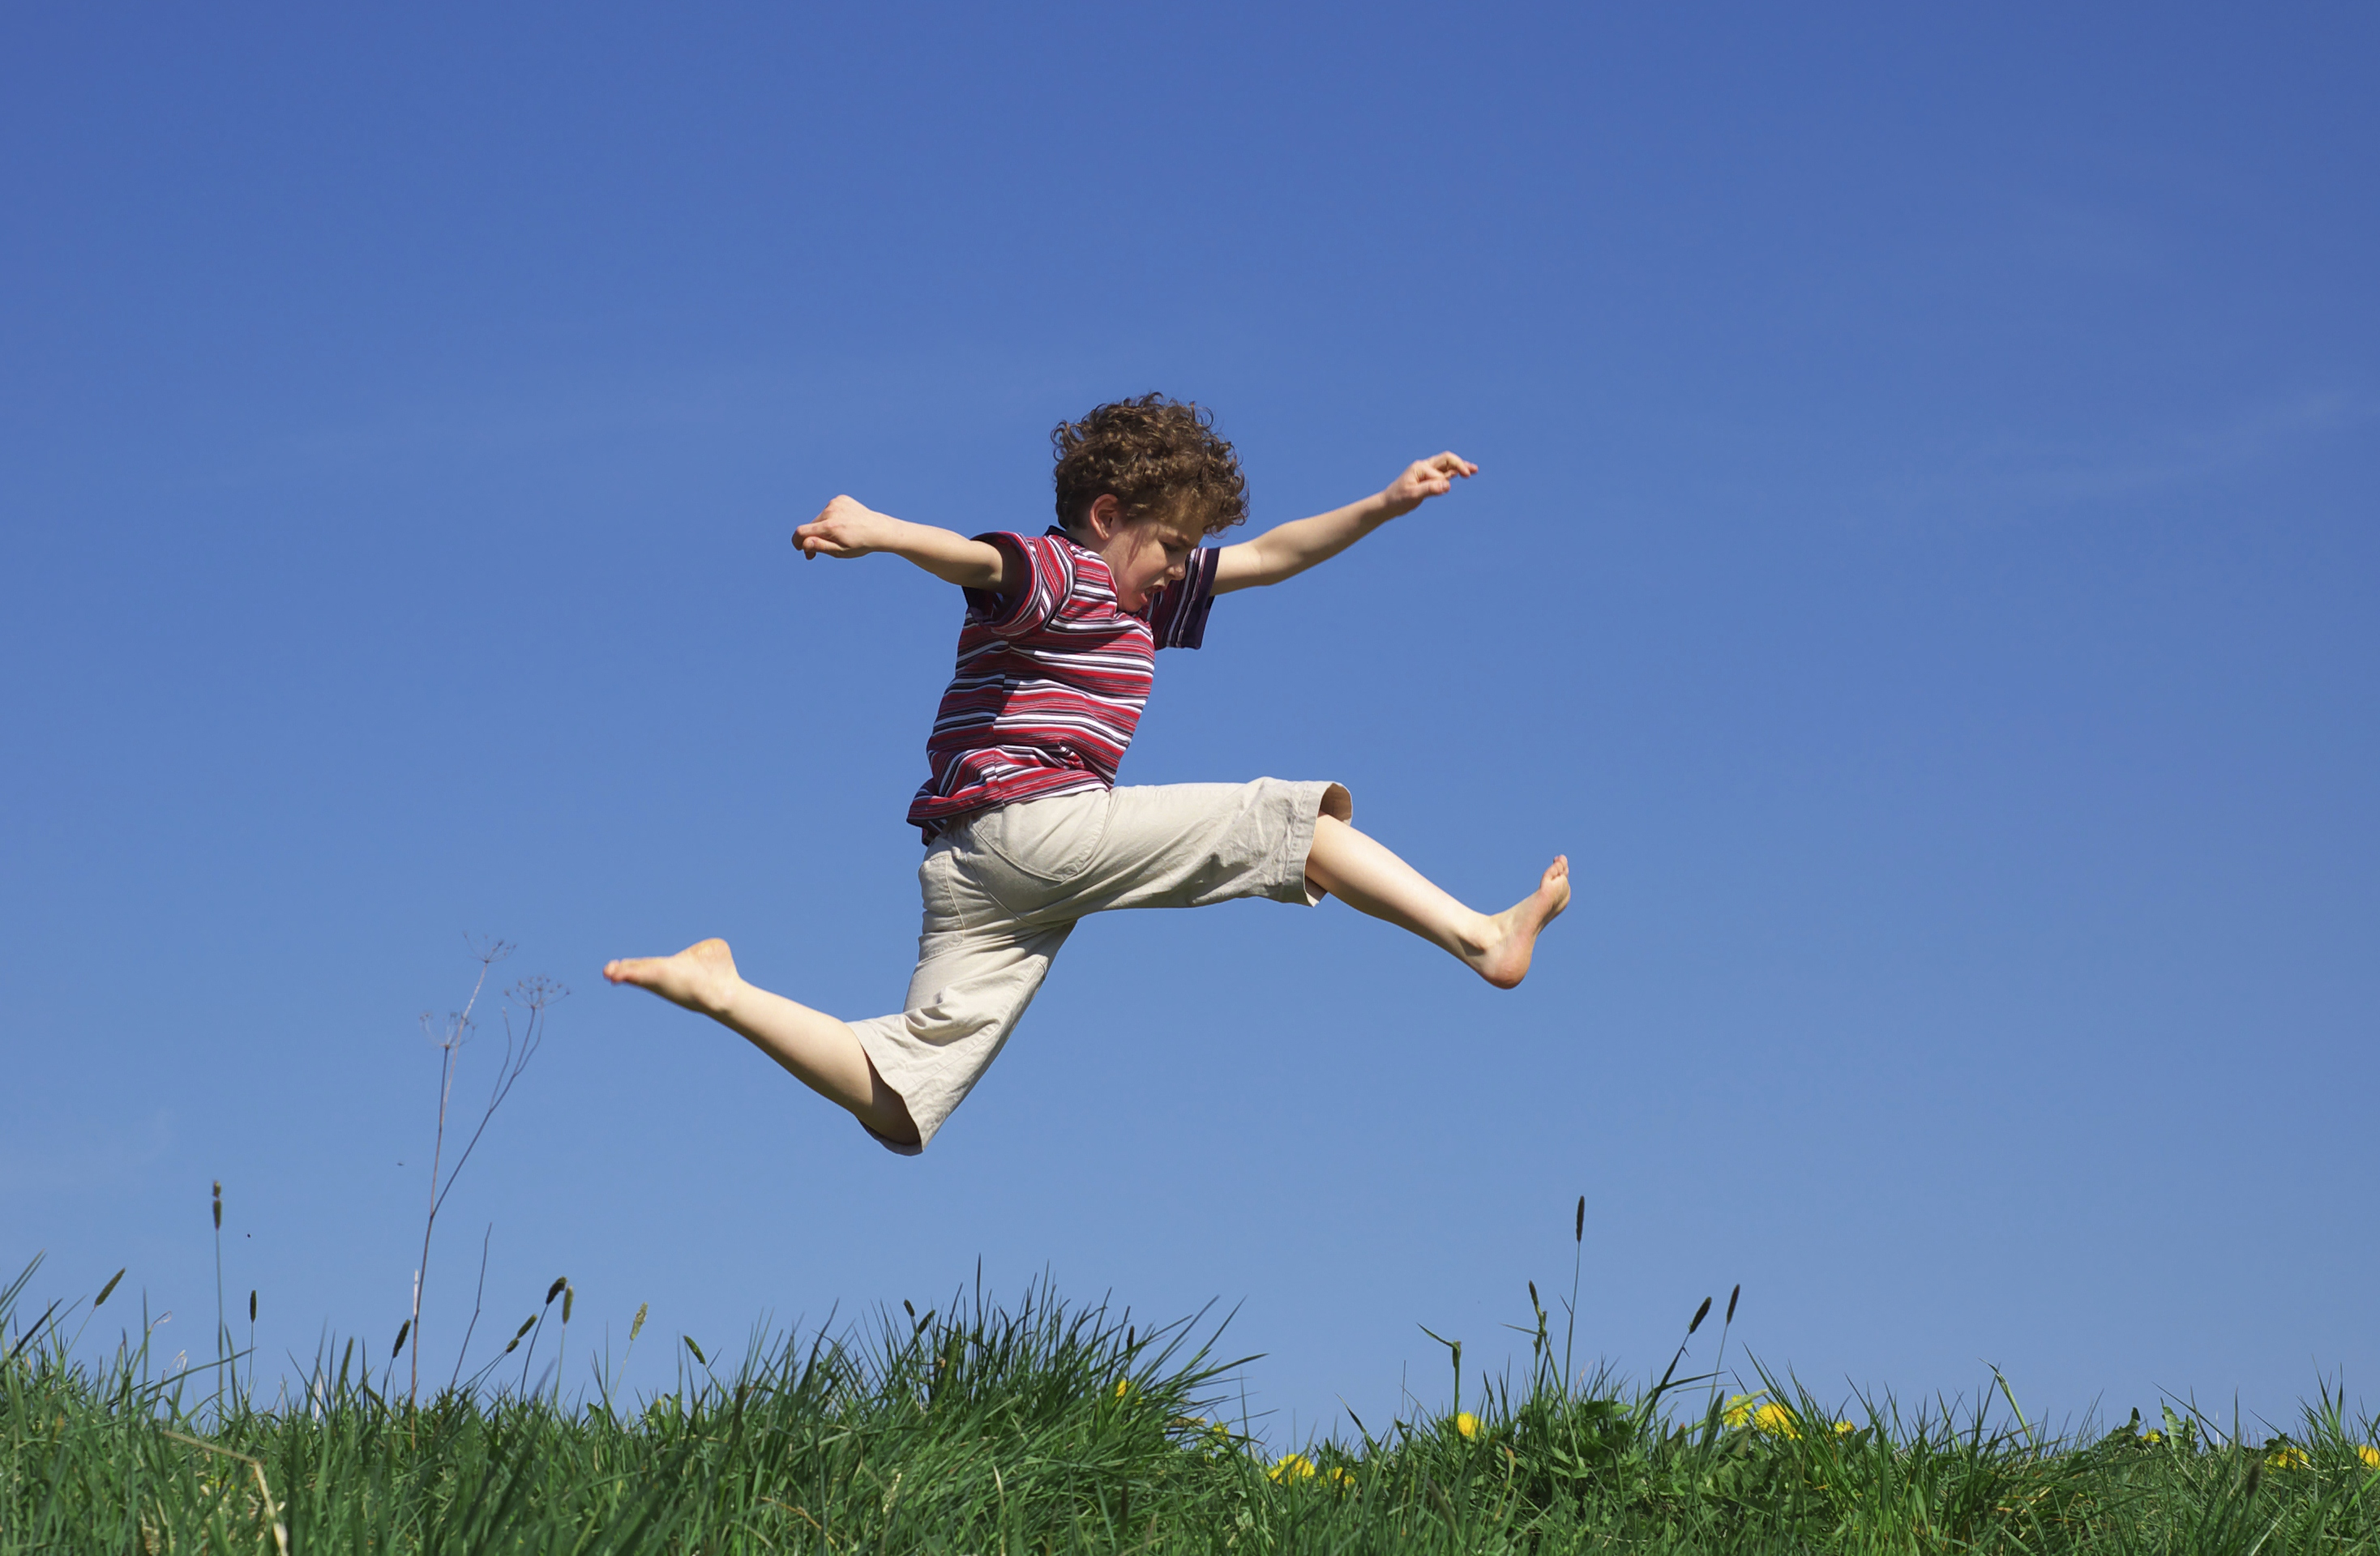 Jump of a Child on a Lawn